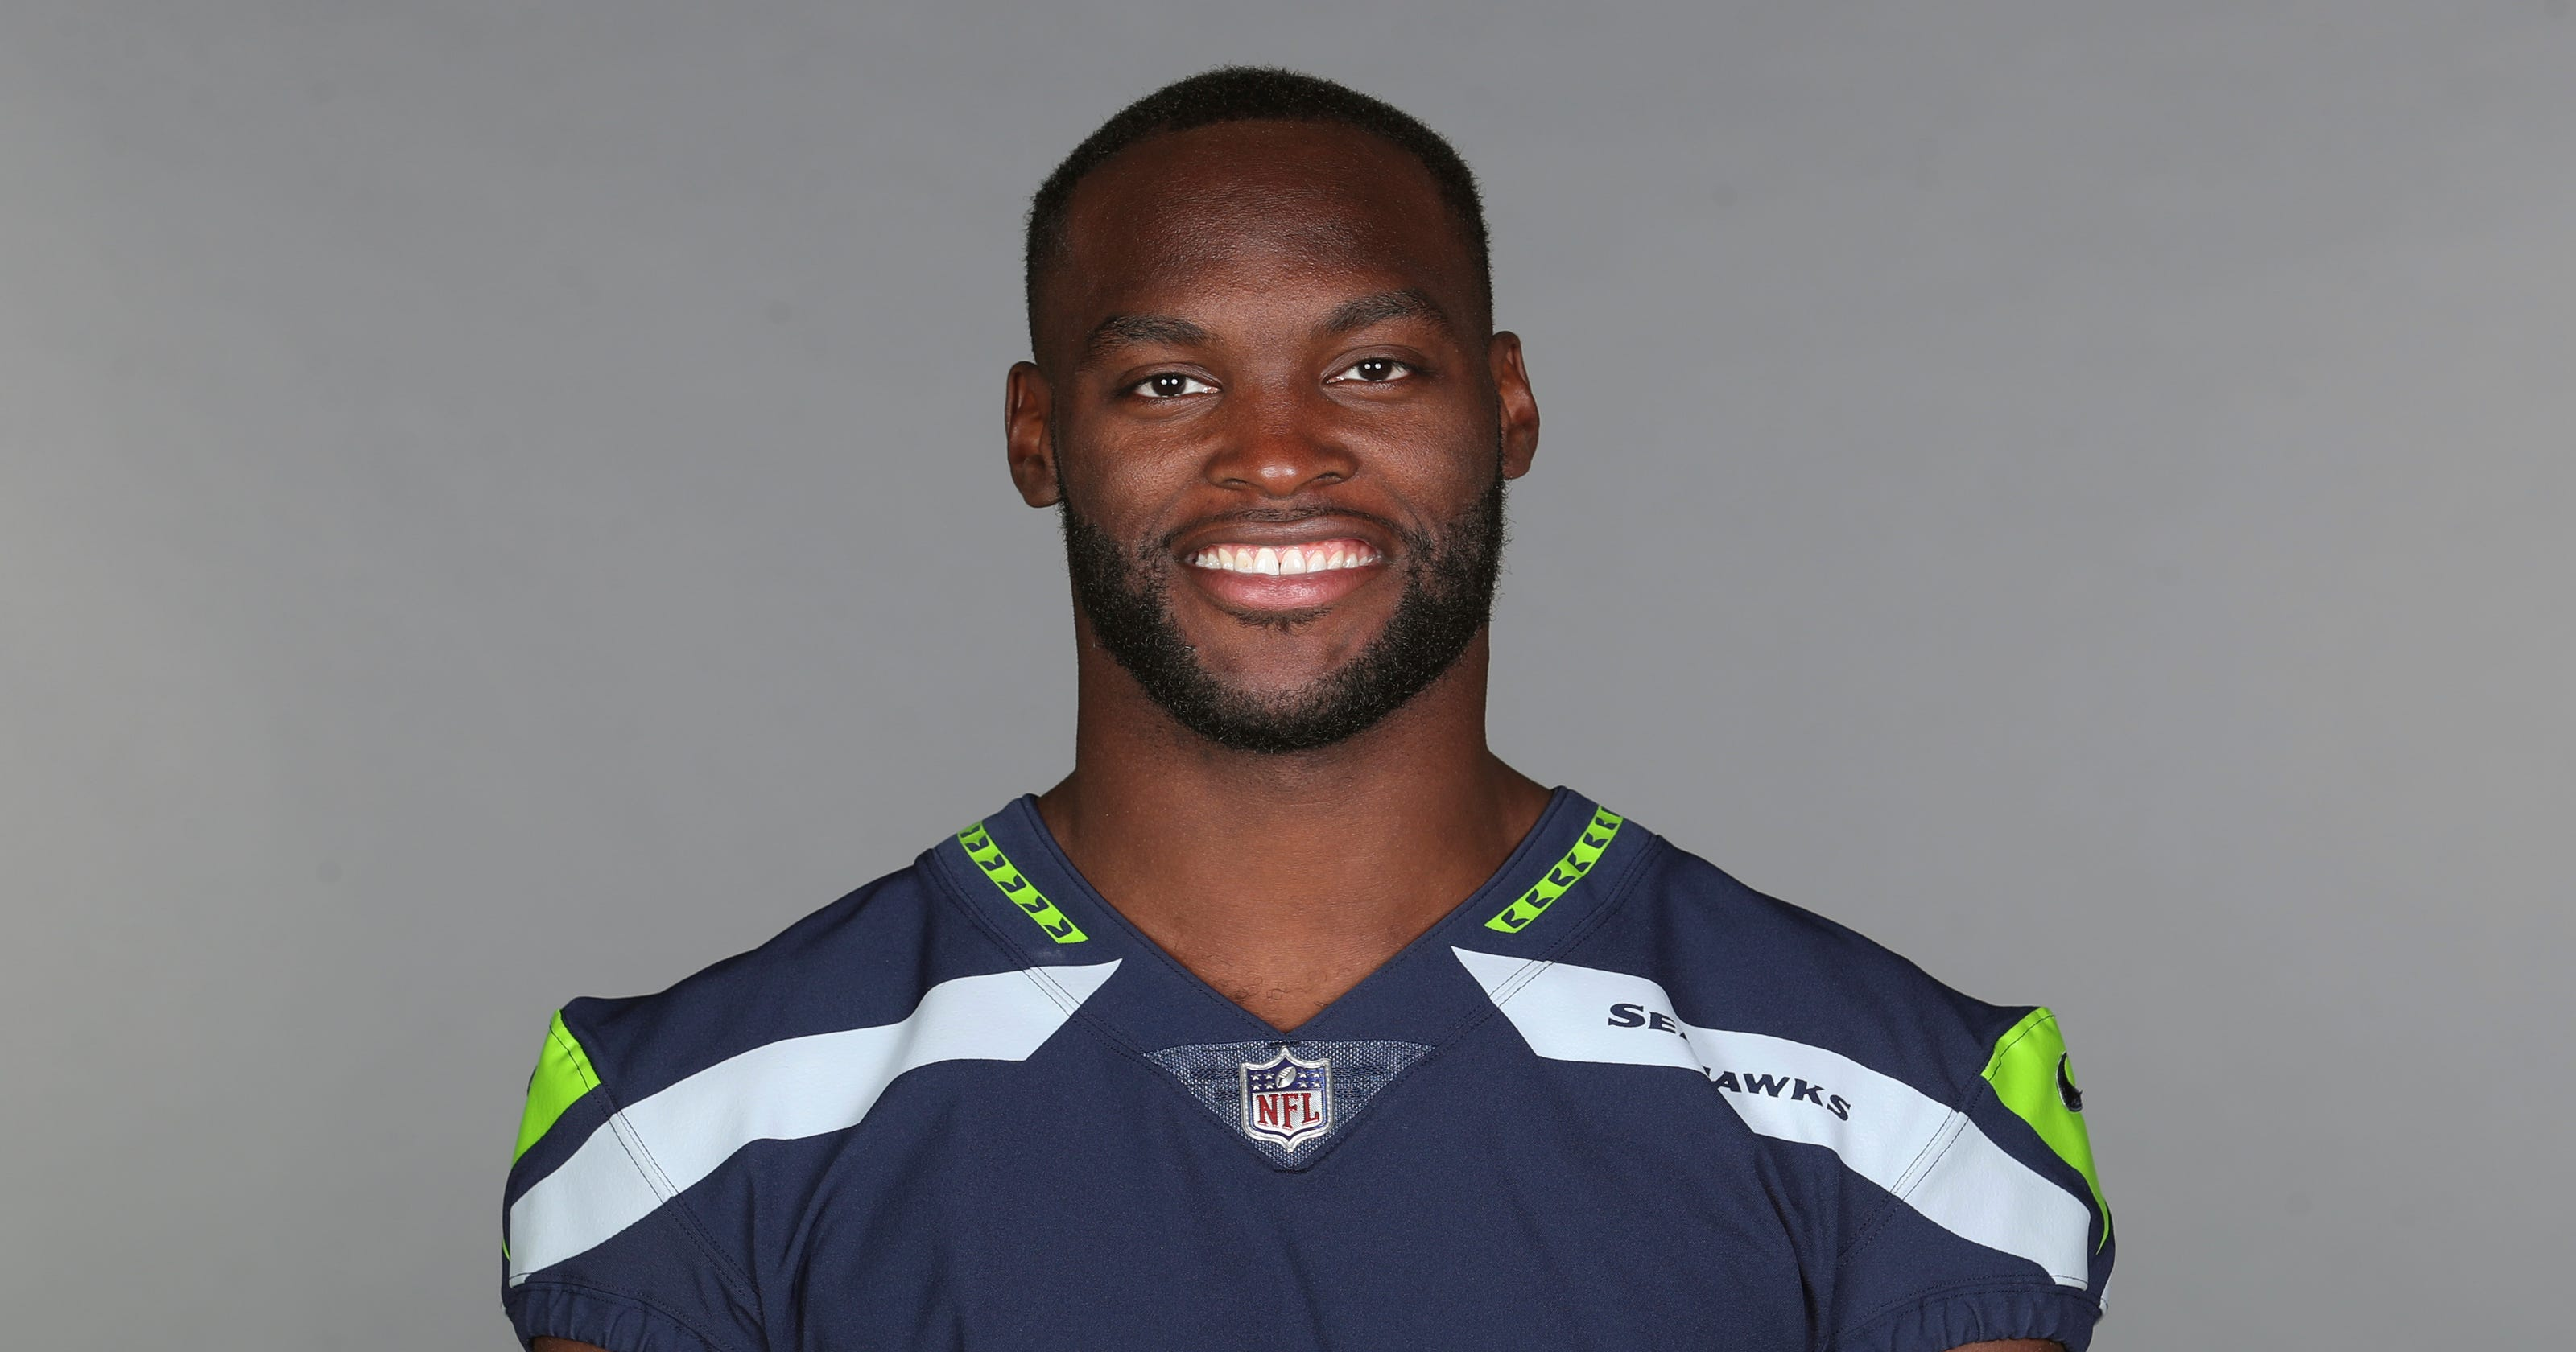 Seahawks hope Barkevious Mingo can be dual threat on defense 7d0fd2c5c